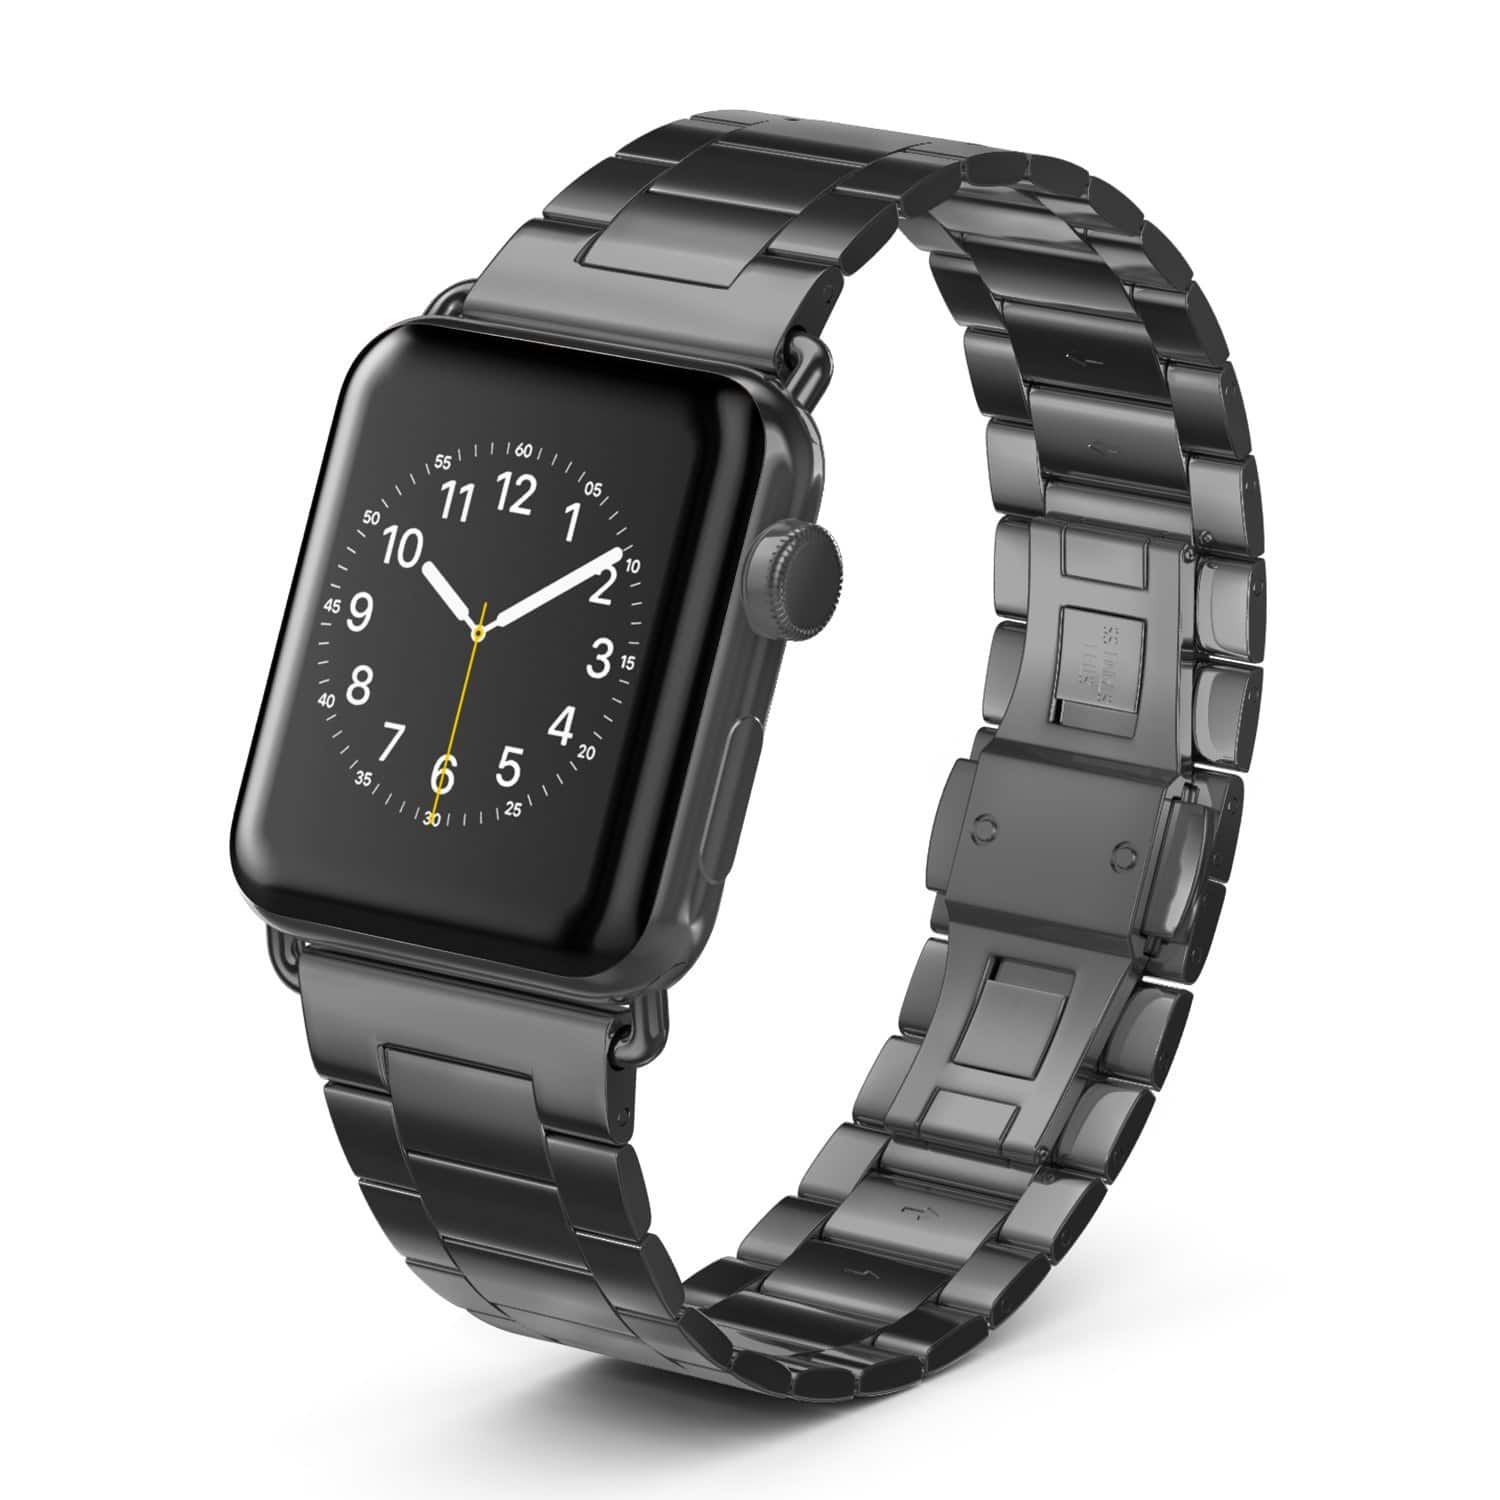 Apple Watch Bands 38mm 42mm Stainless Steel Bracelet Strap Replacement 50% OFF @$9.99+FS @Amazon